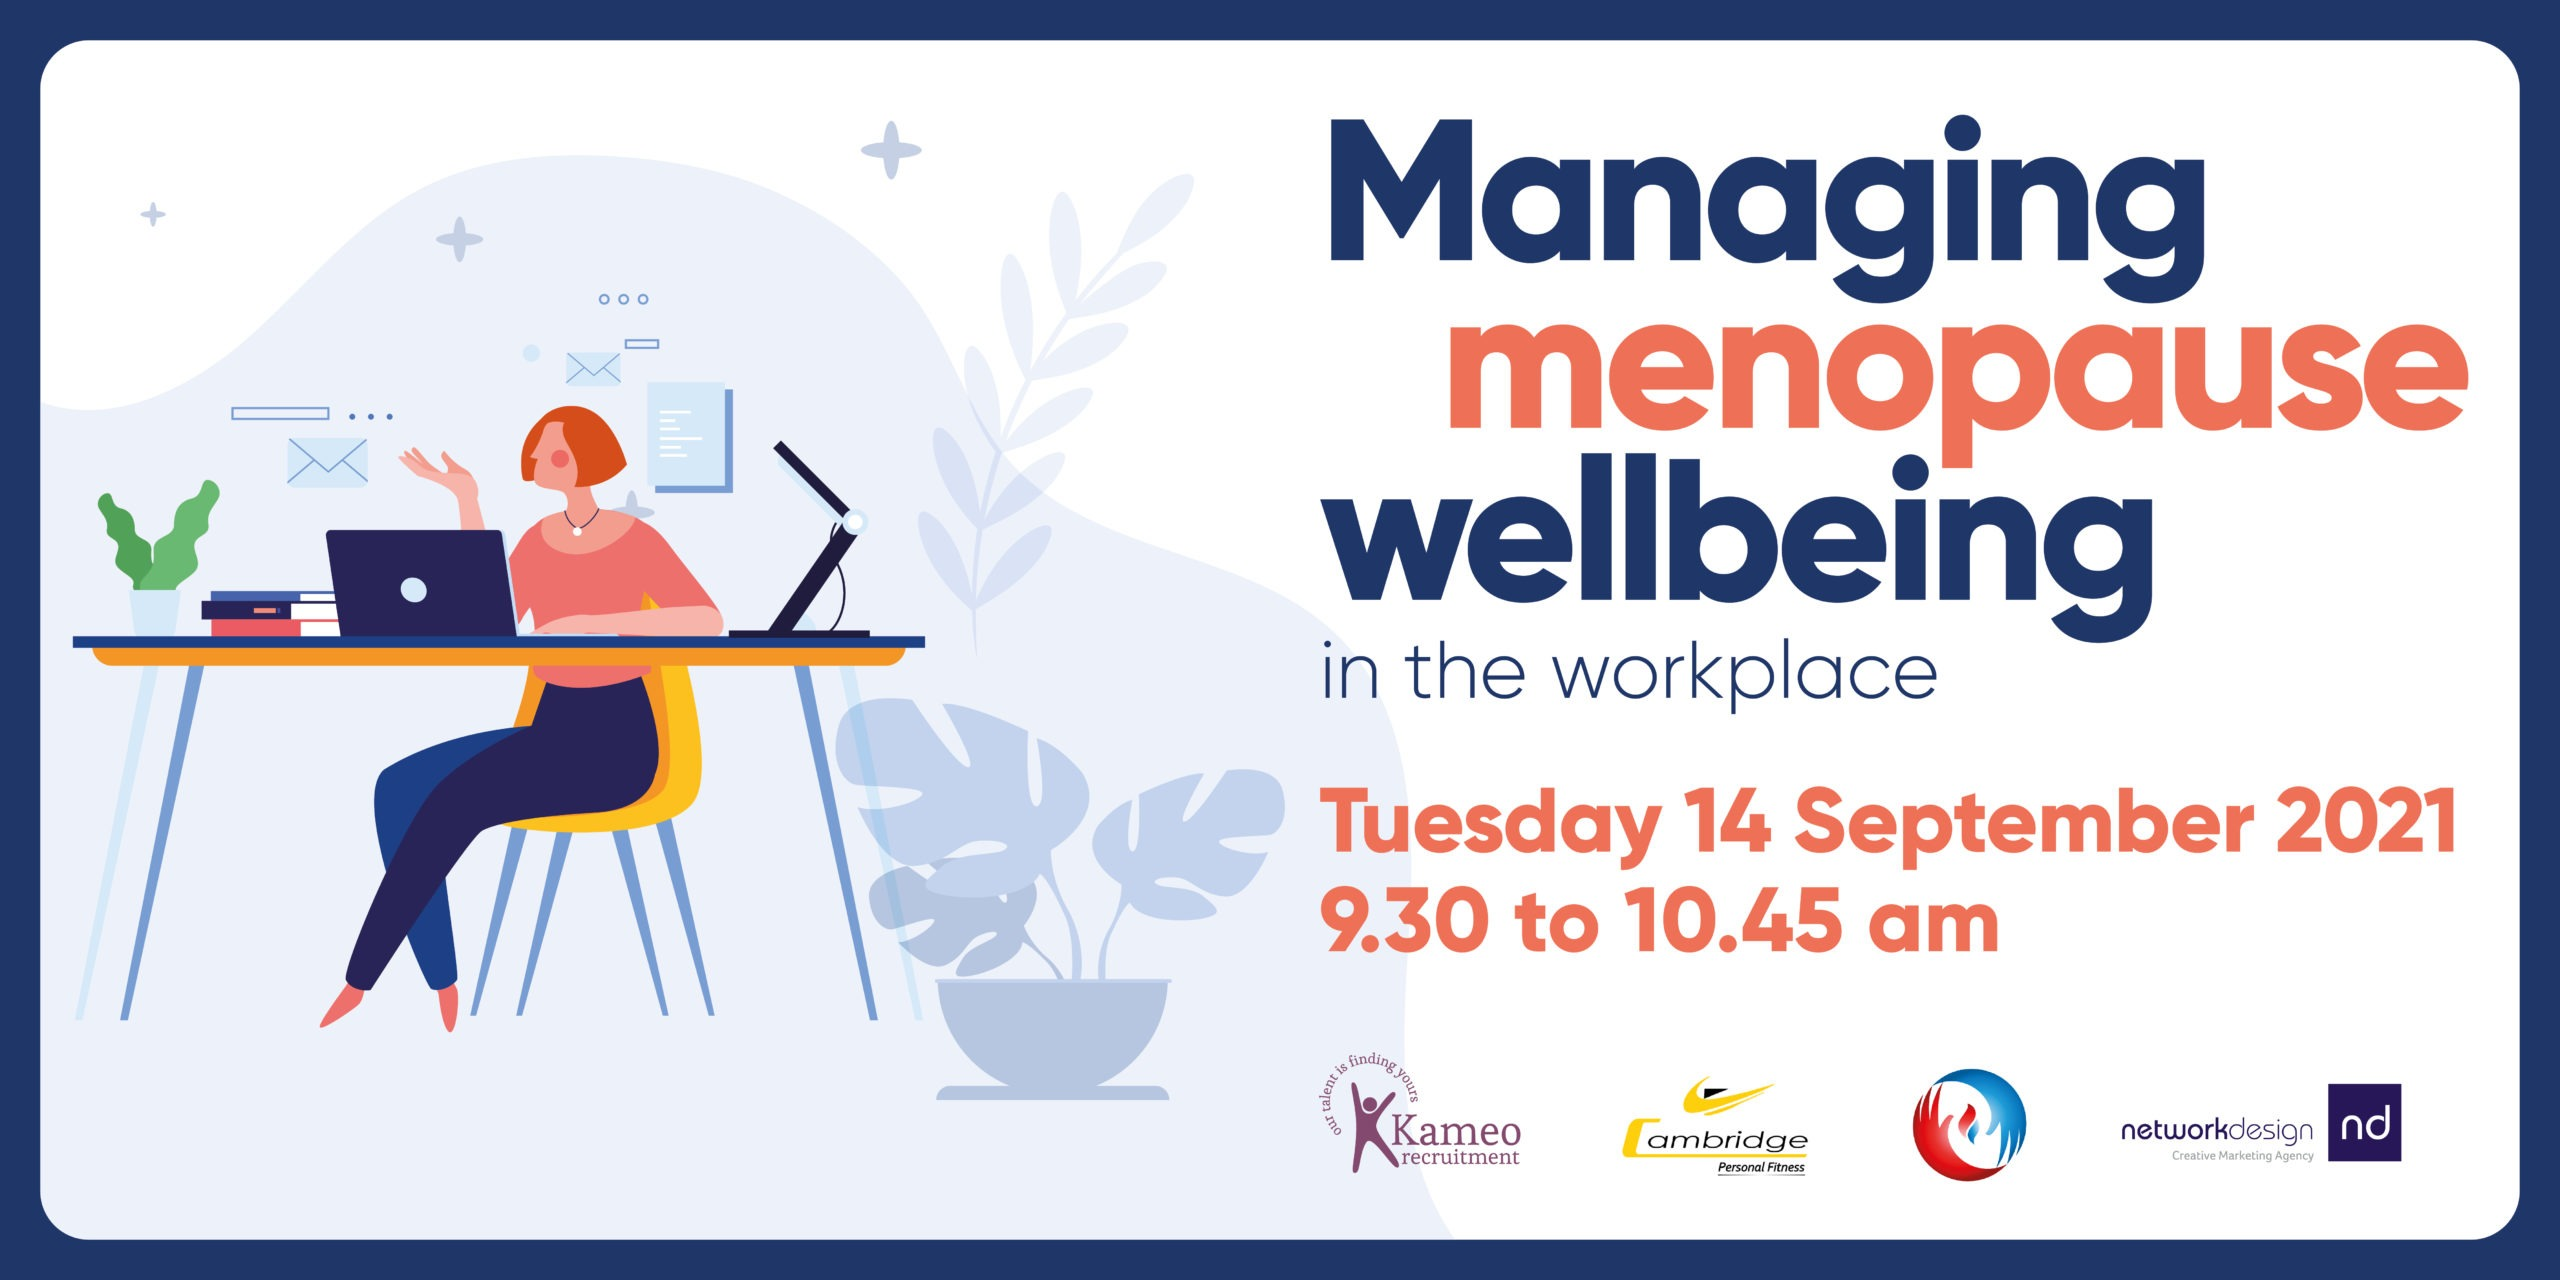 Managing menopause wellbeing in the workplace Sept 21